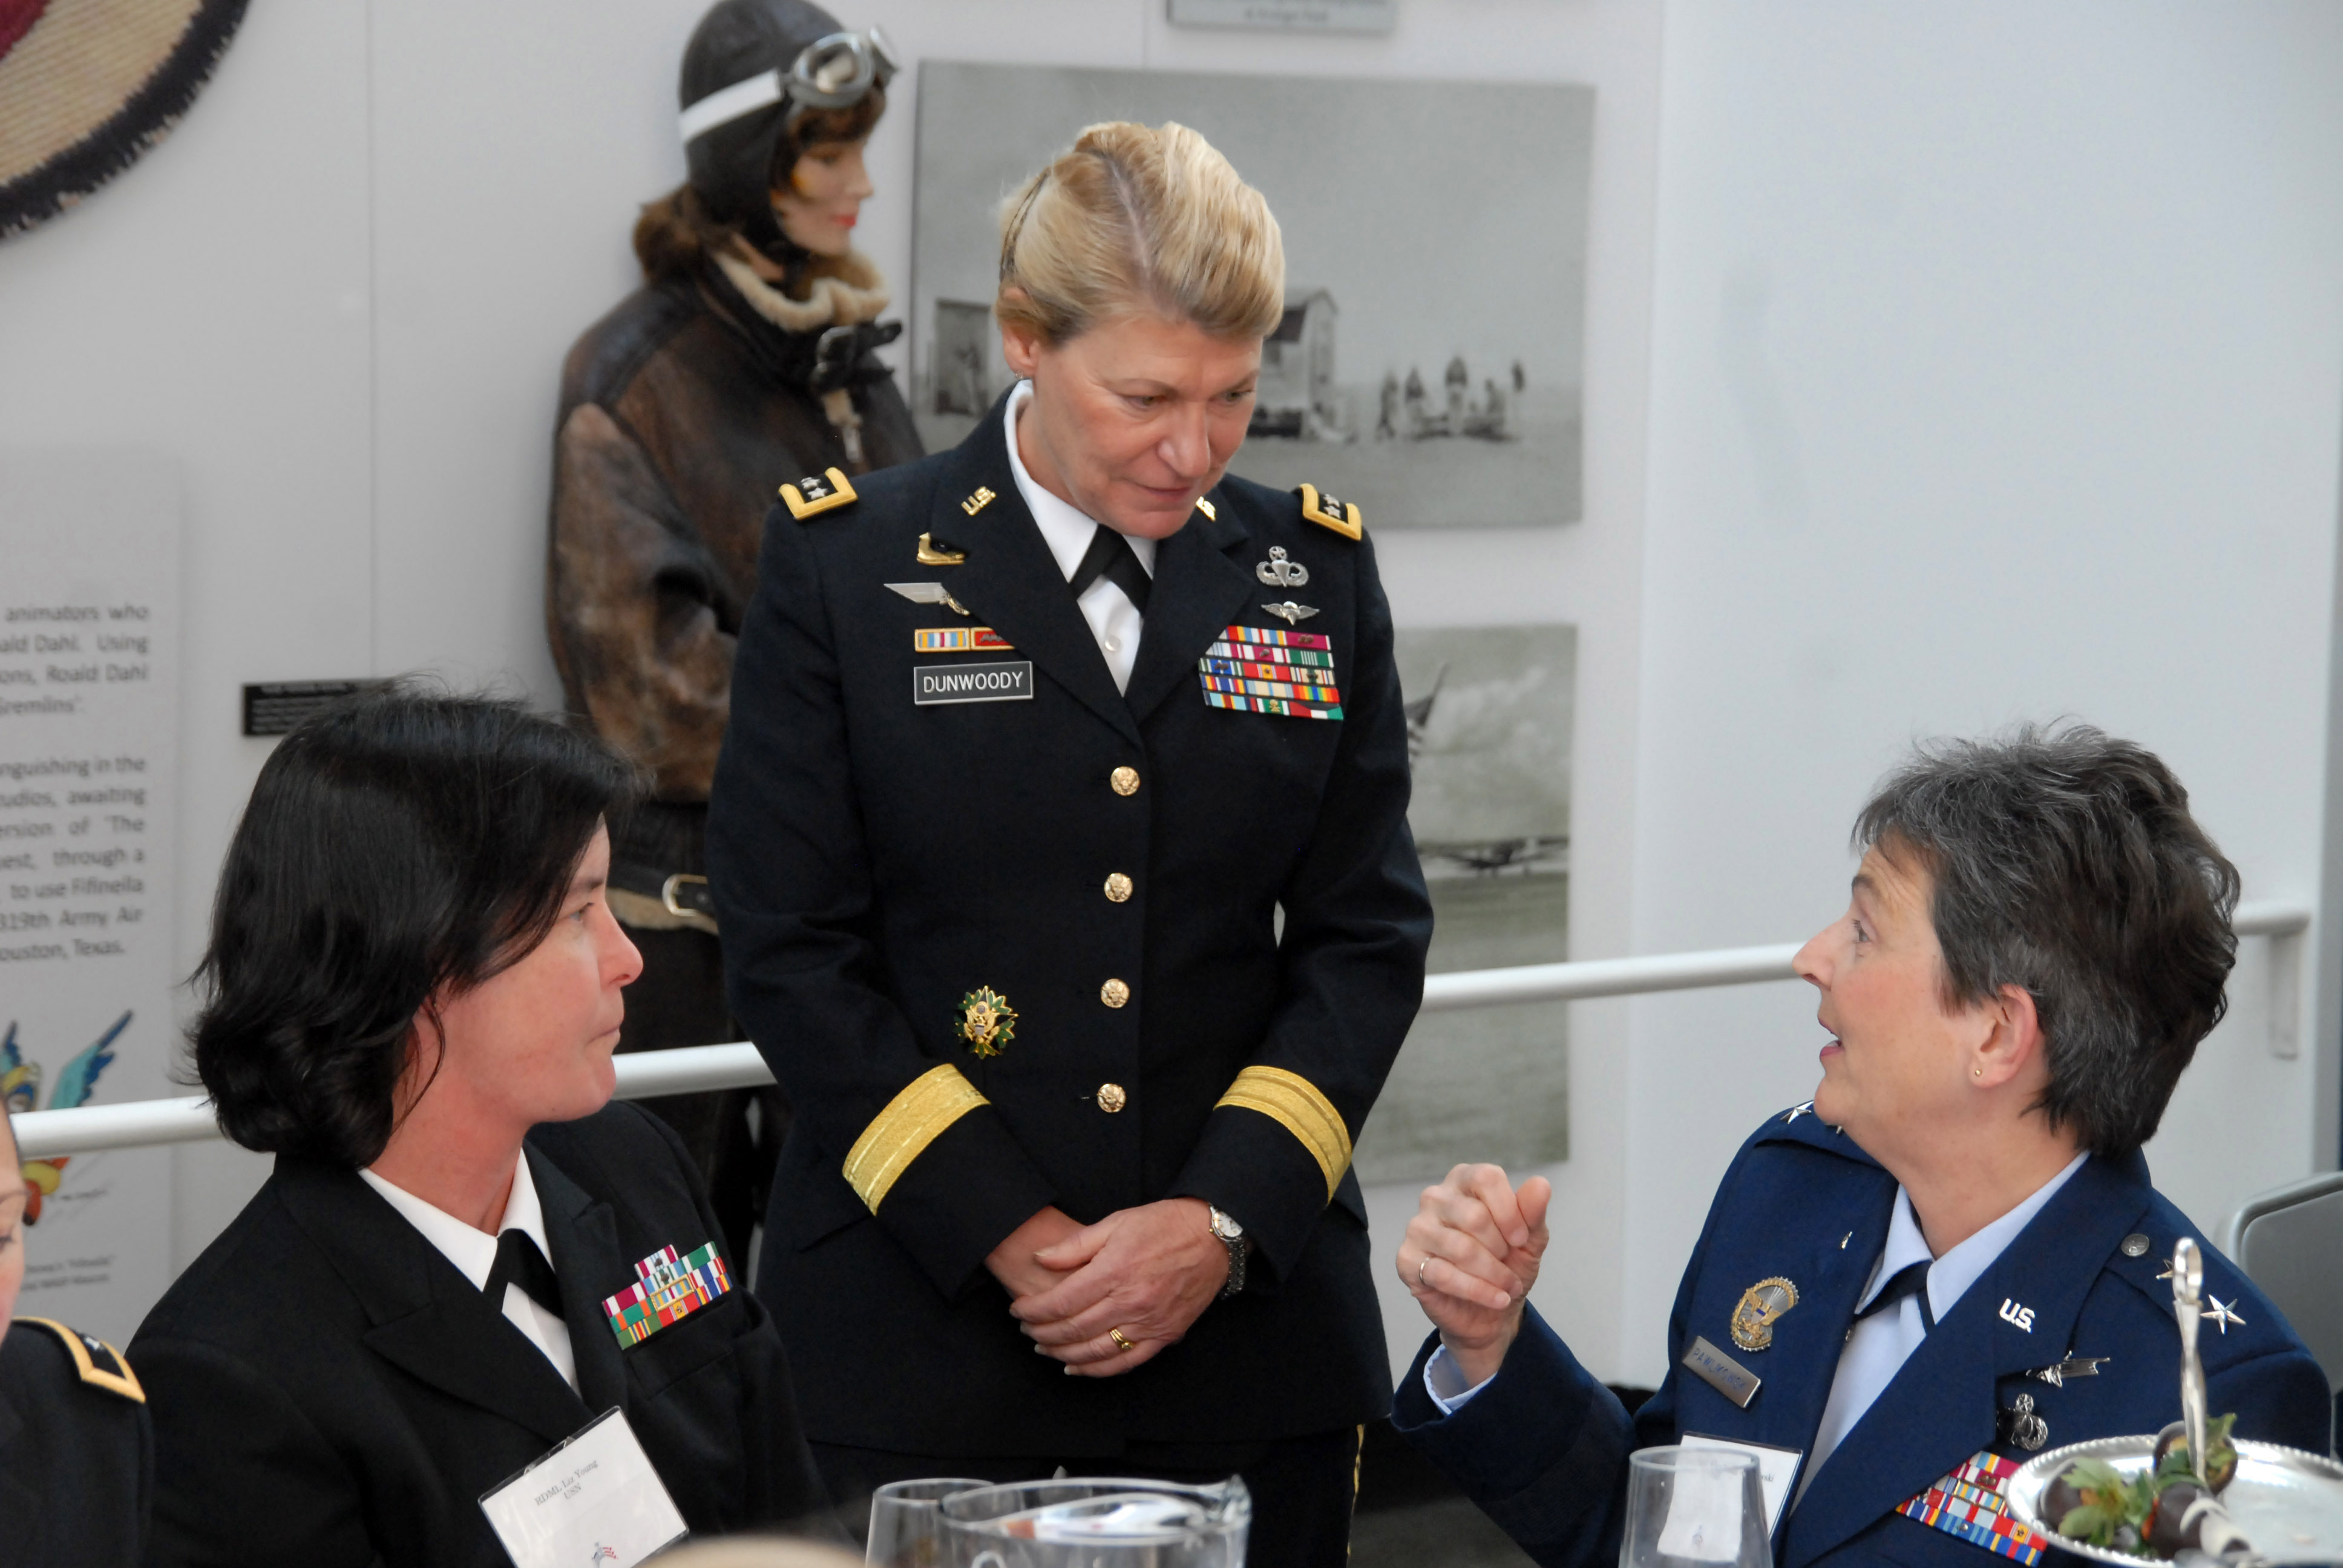 female military officer dating Meet single police men and police women in uniform at policesinglescom the police represent true honor and service in action the good part is these brave men and women single cops want to meet you for dating, romance, and friendship at policesinglescom start a free profile, and begin connecting now with our law enforcement community.